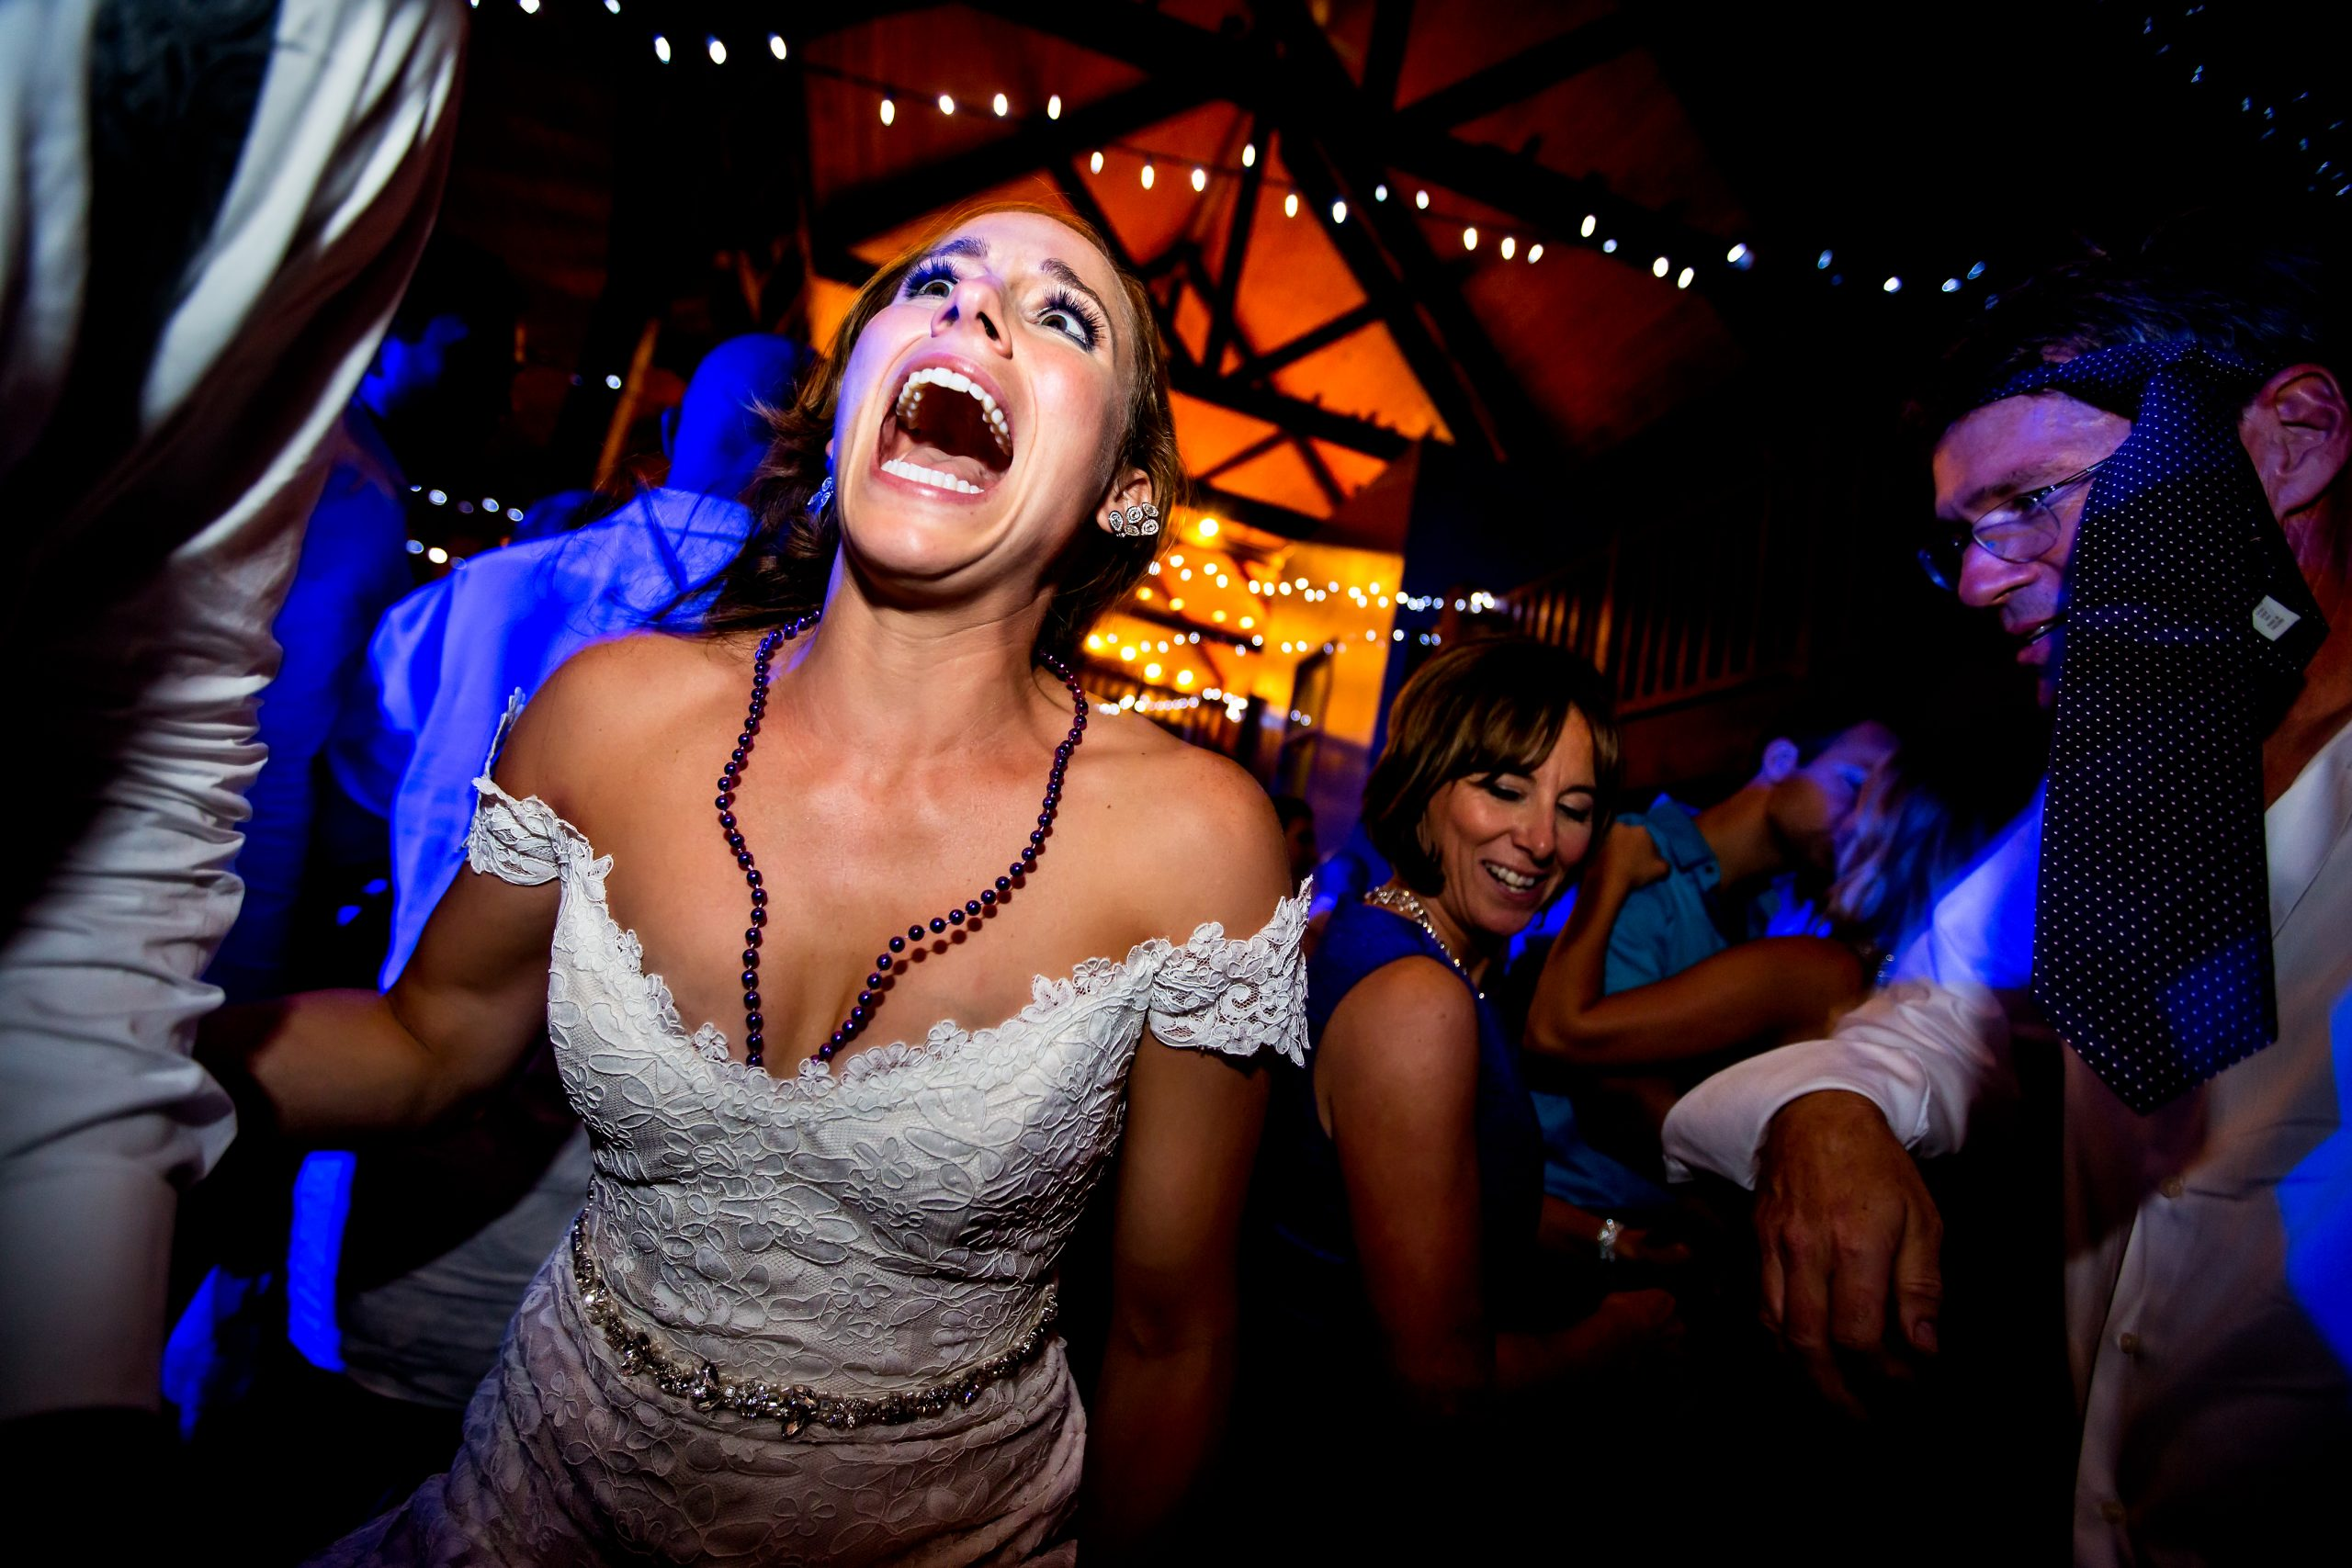 A bride dances excitedly on the dance floor